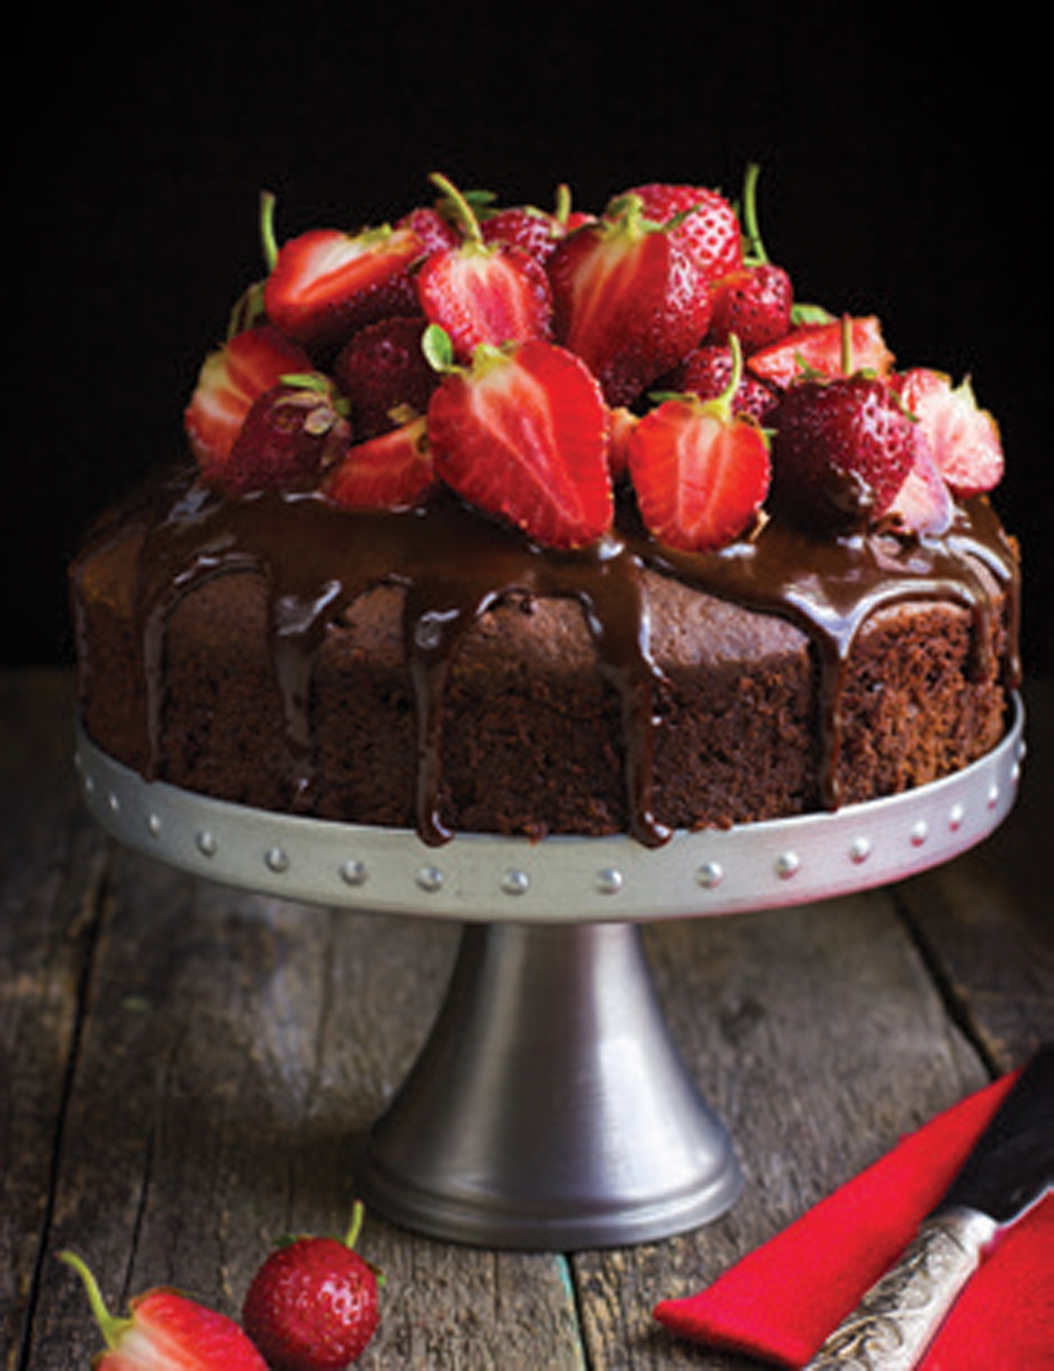 Chocolate cake from beloved birthdays to decadent for Different types of cakes recipes with pictures